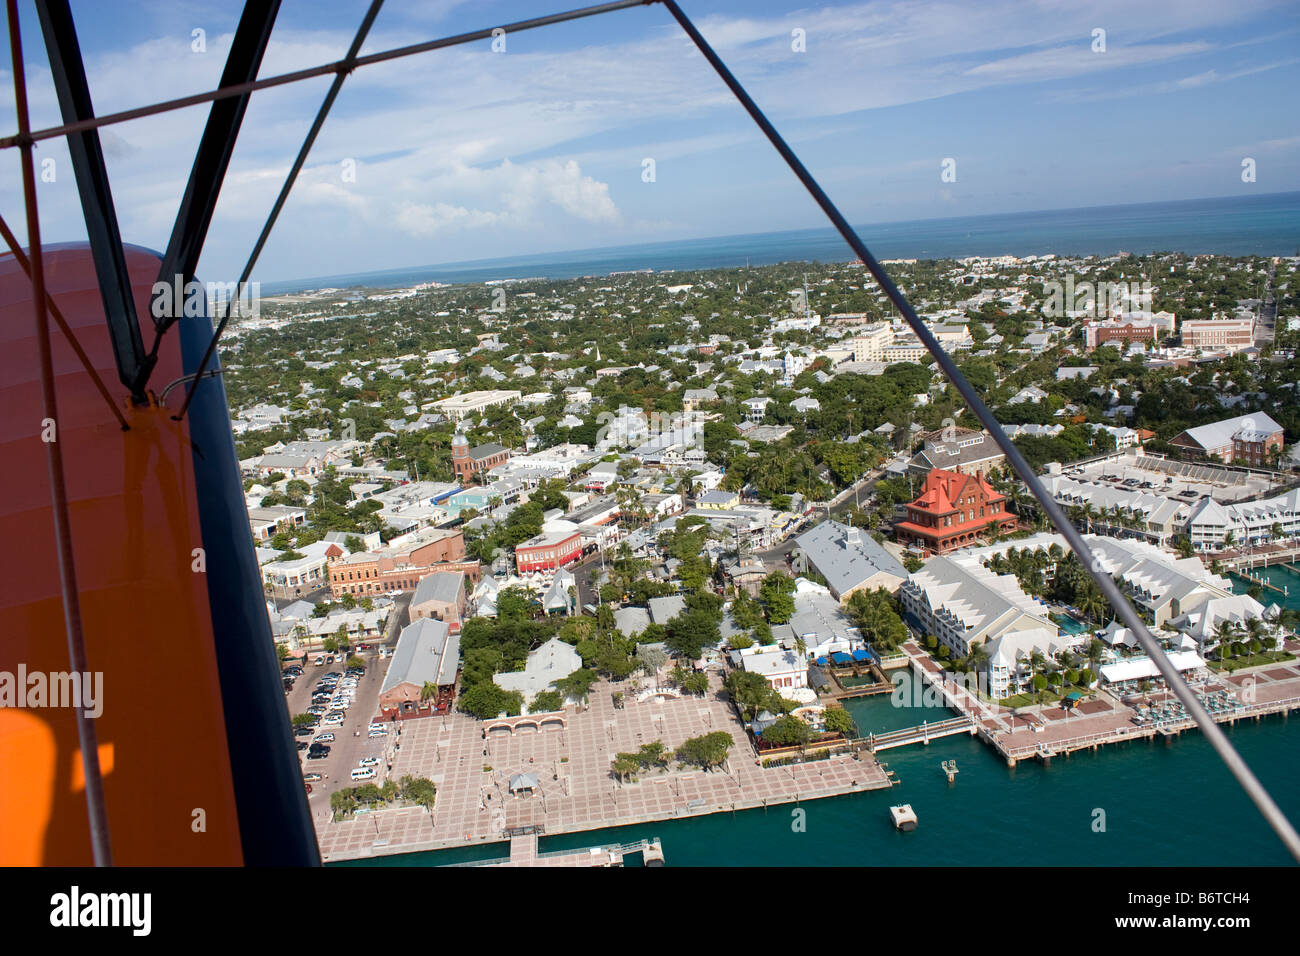 Aerial view of Mallory Square at Key West Florida - Stock Image